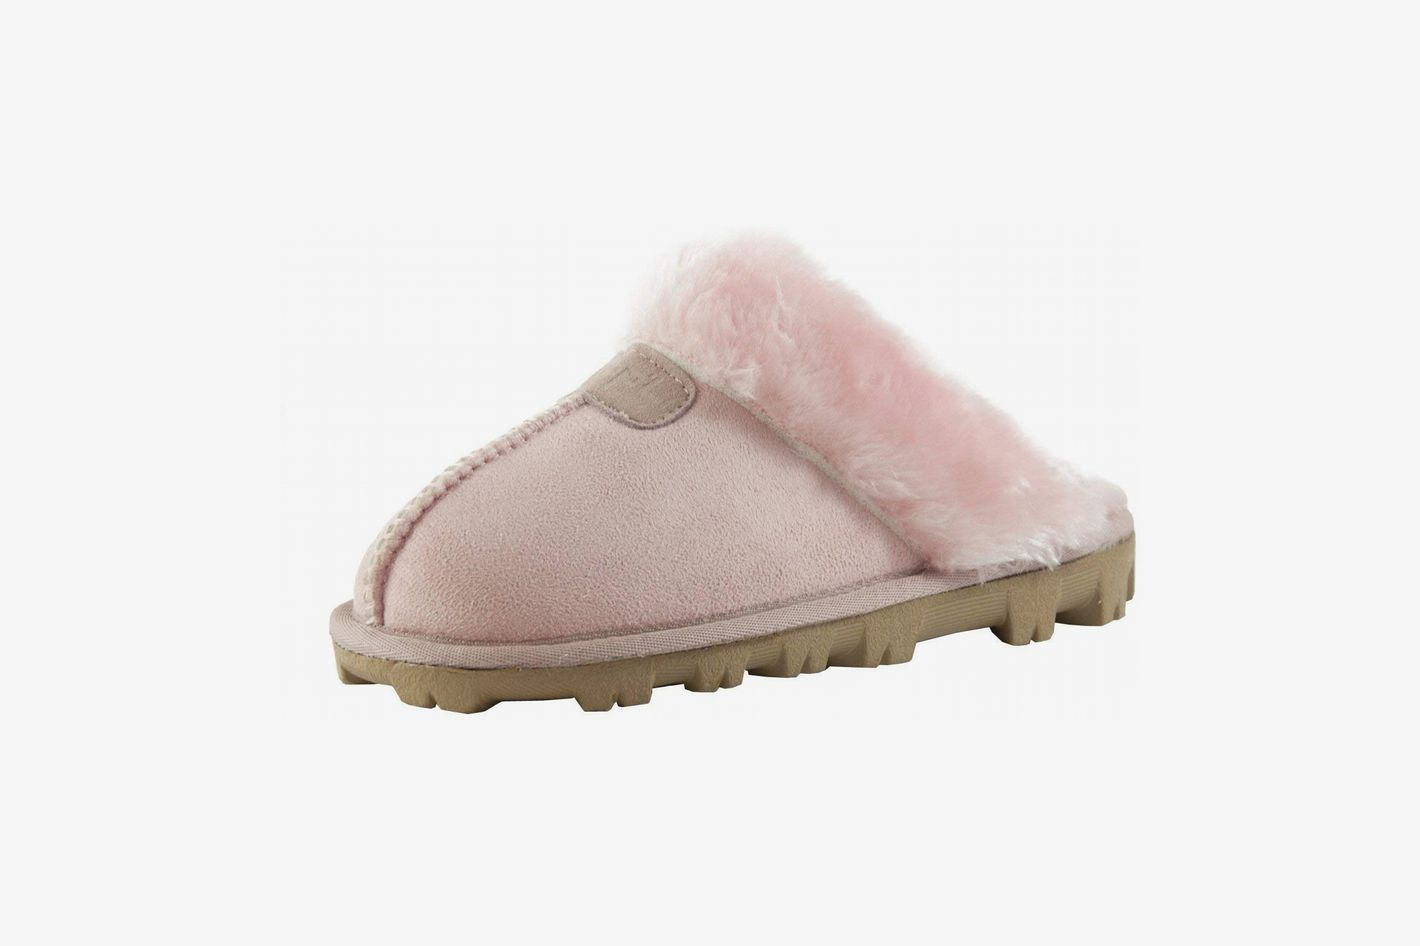 faf3e0a7fde Clppli Women s Slippers With a Faux Fur Trim